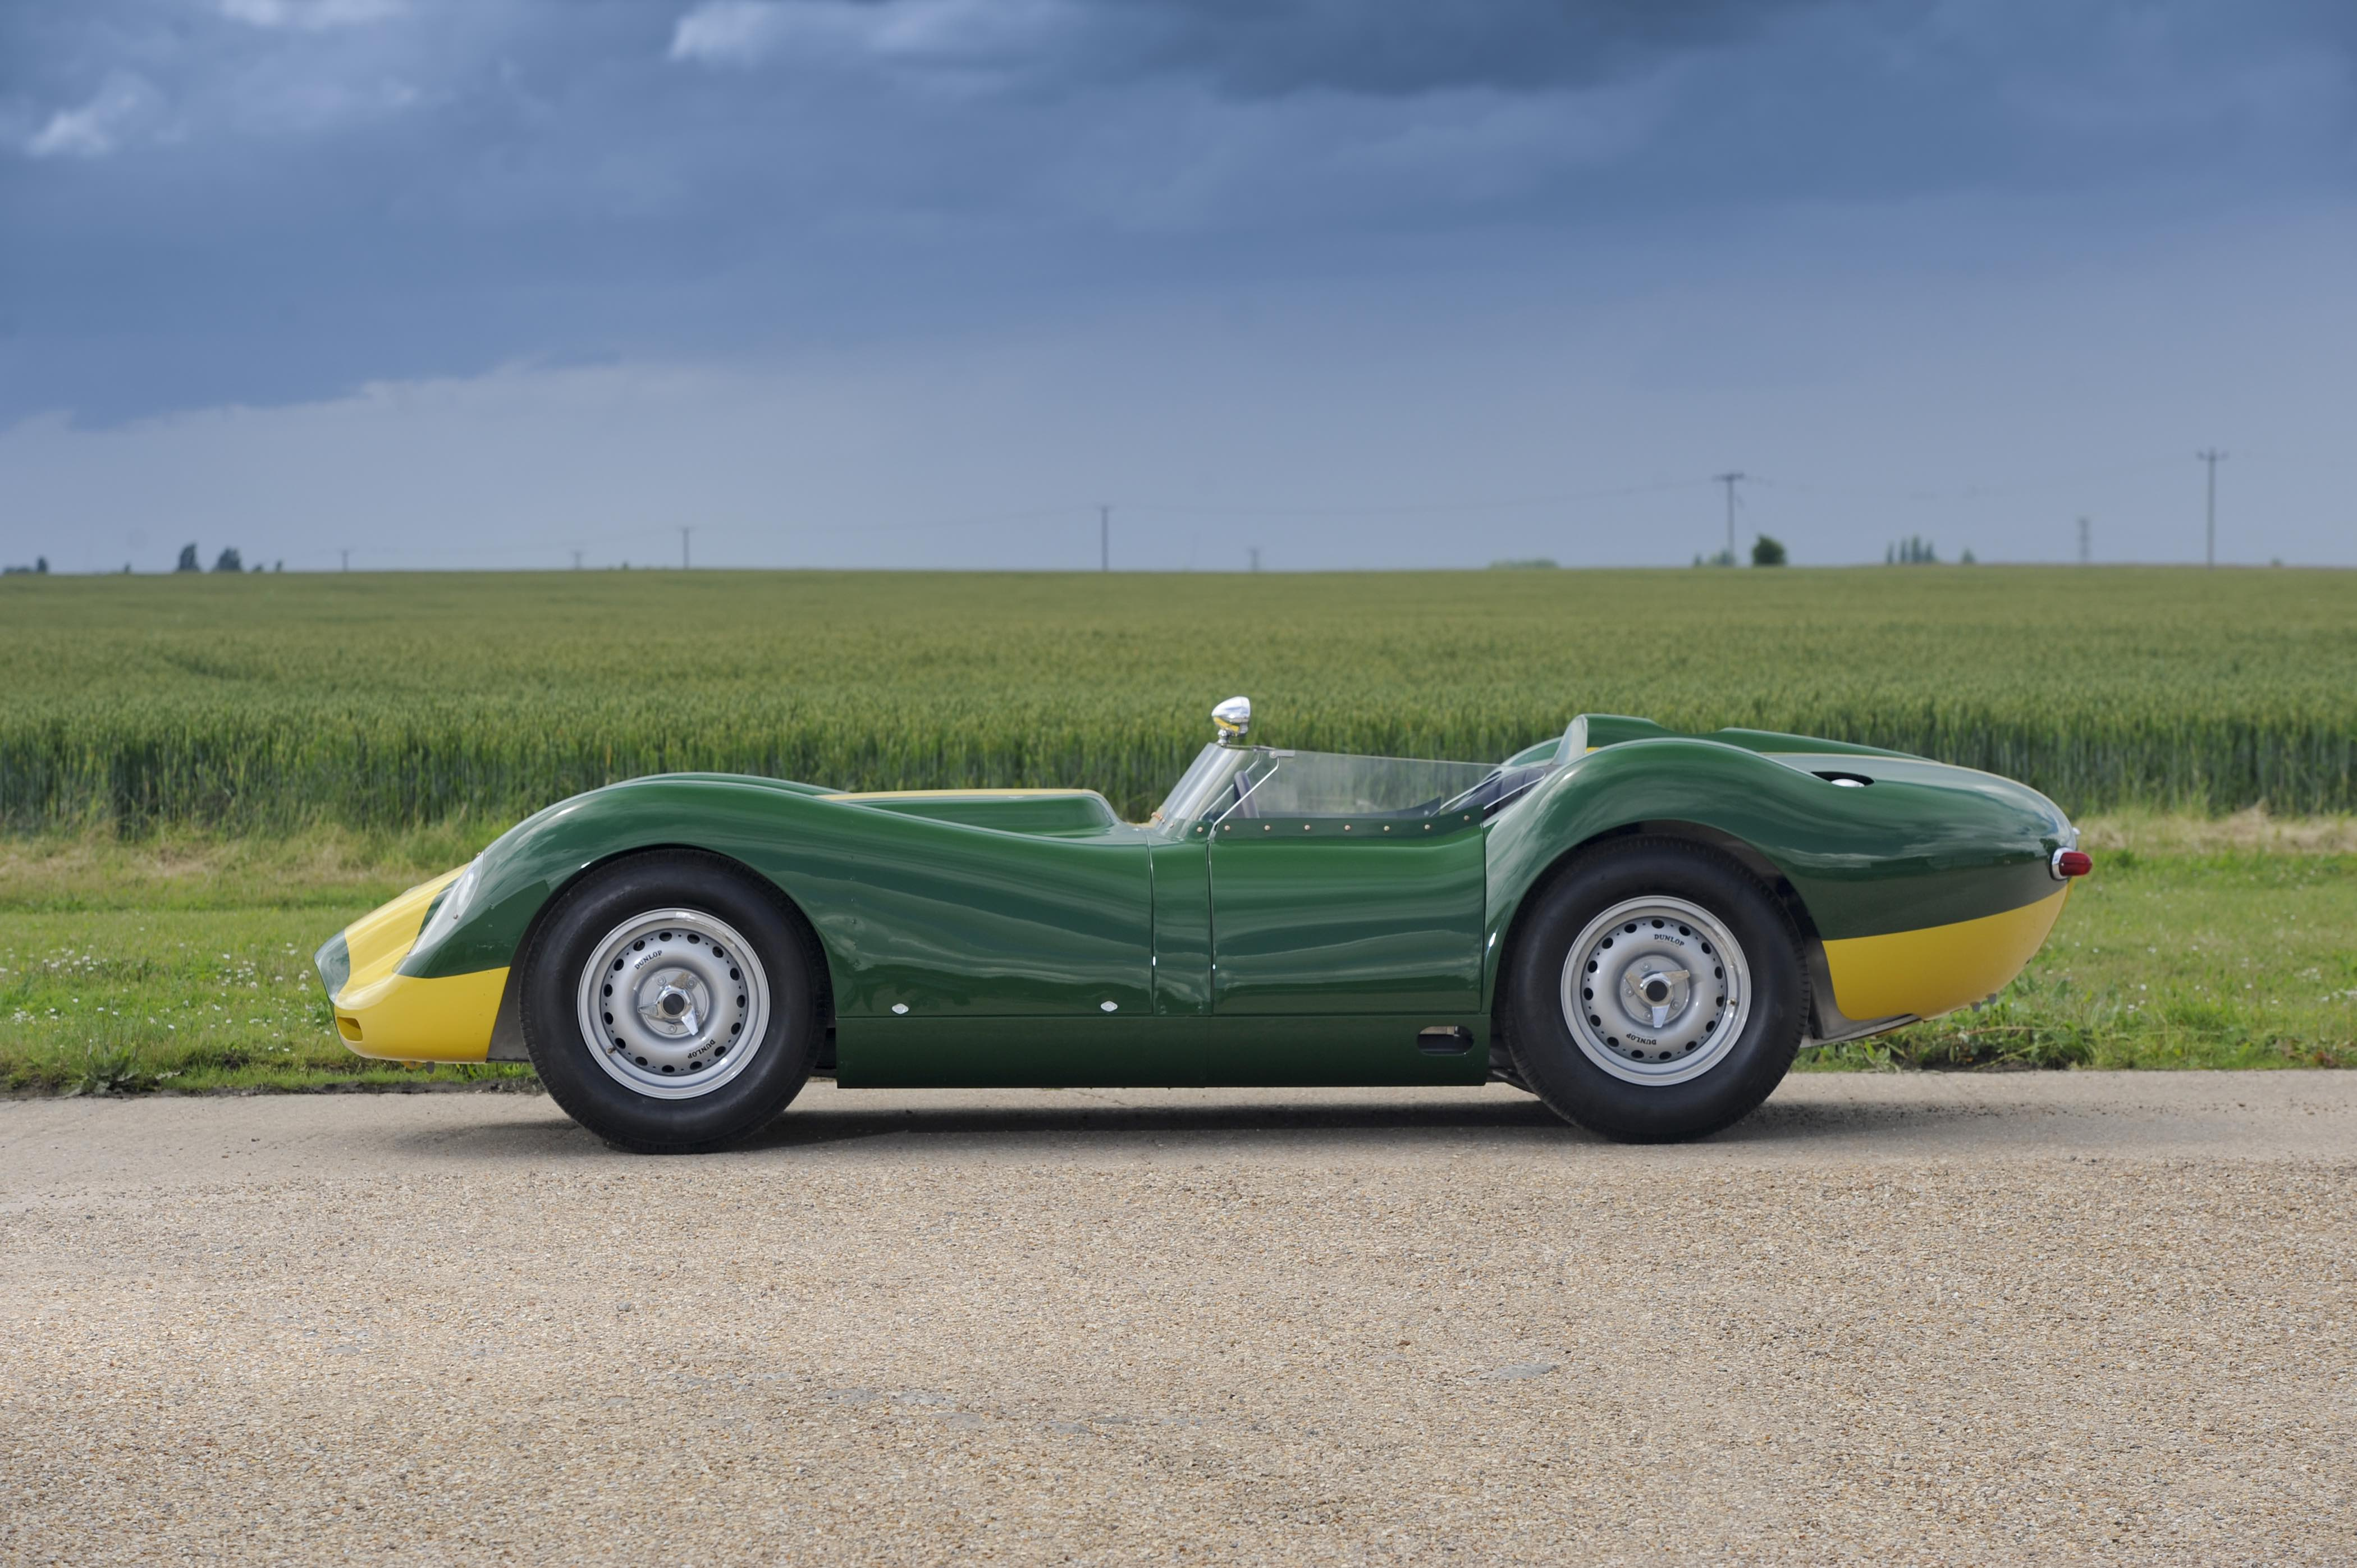 Motorsport PR: Lister to bring legendary Knobbly to London Motor Show